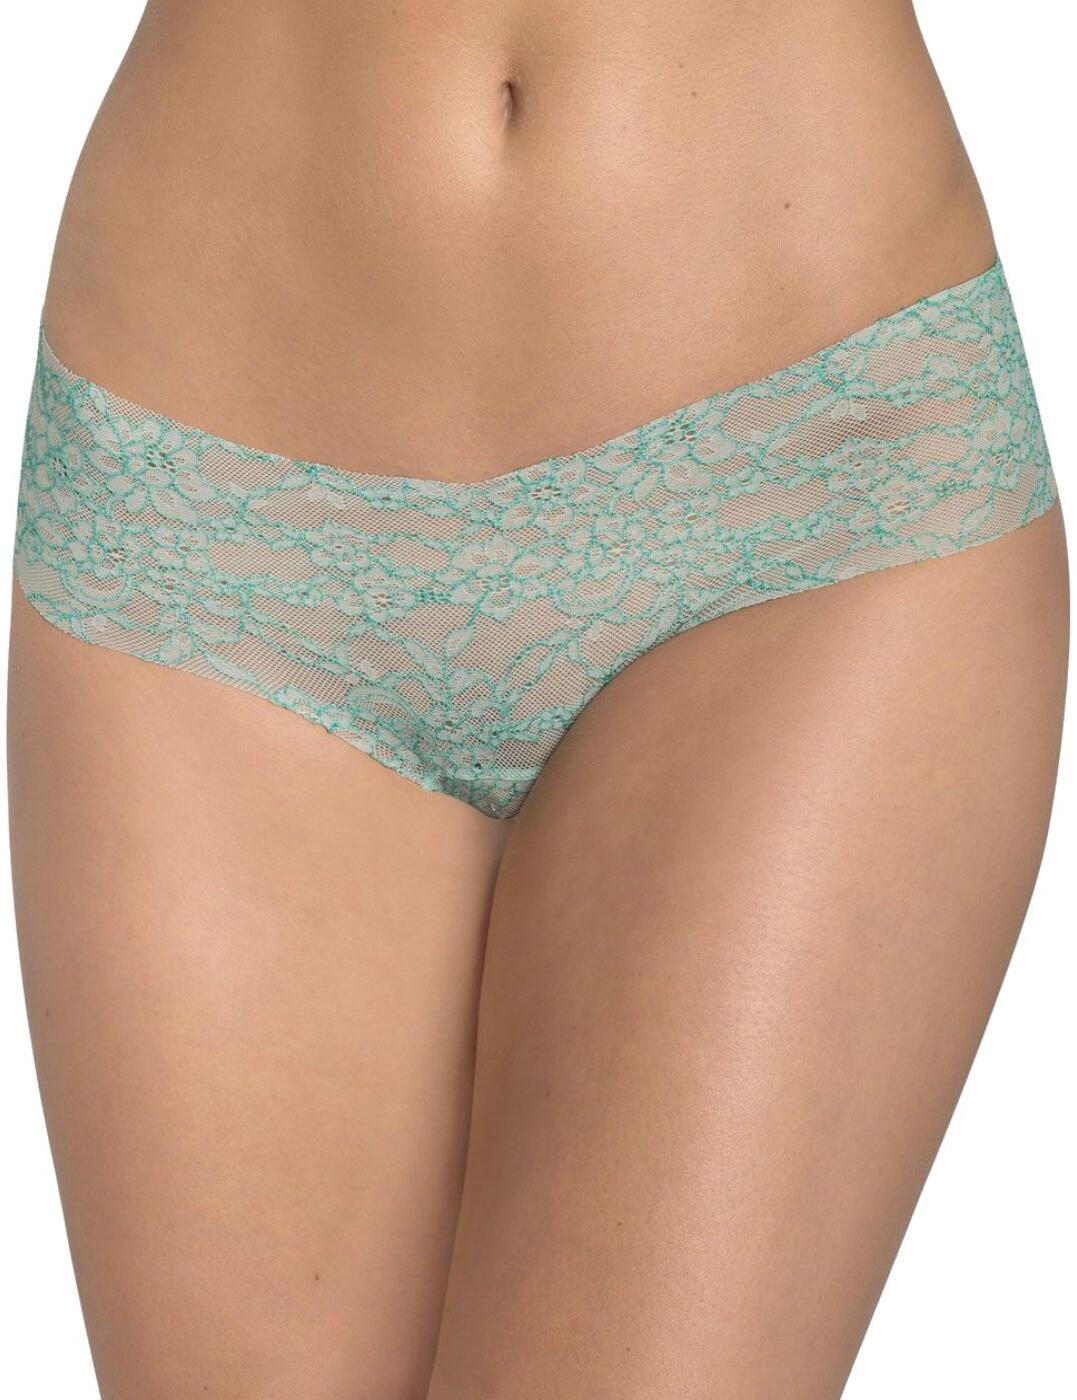 10144013 Sloggi Light Lace 2.0 Hipster Brief - 10144013 Spring Green